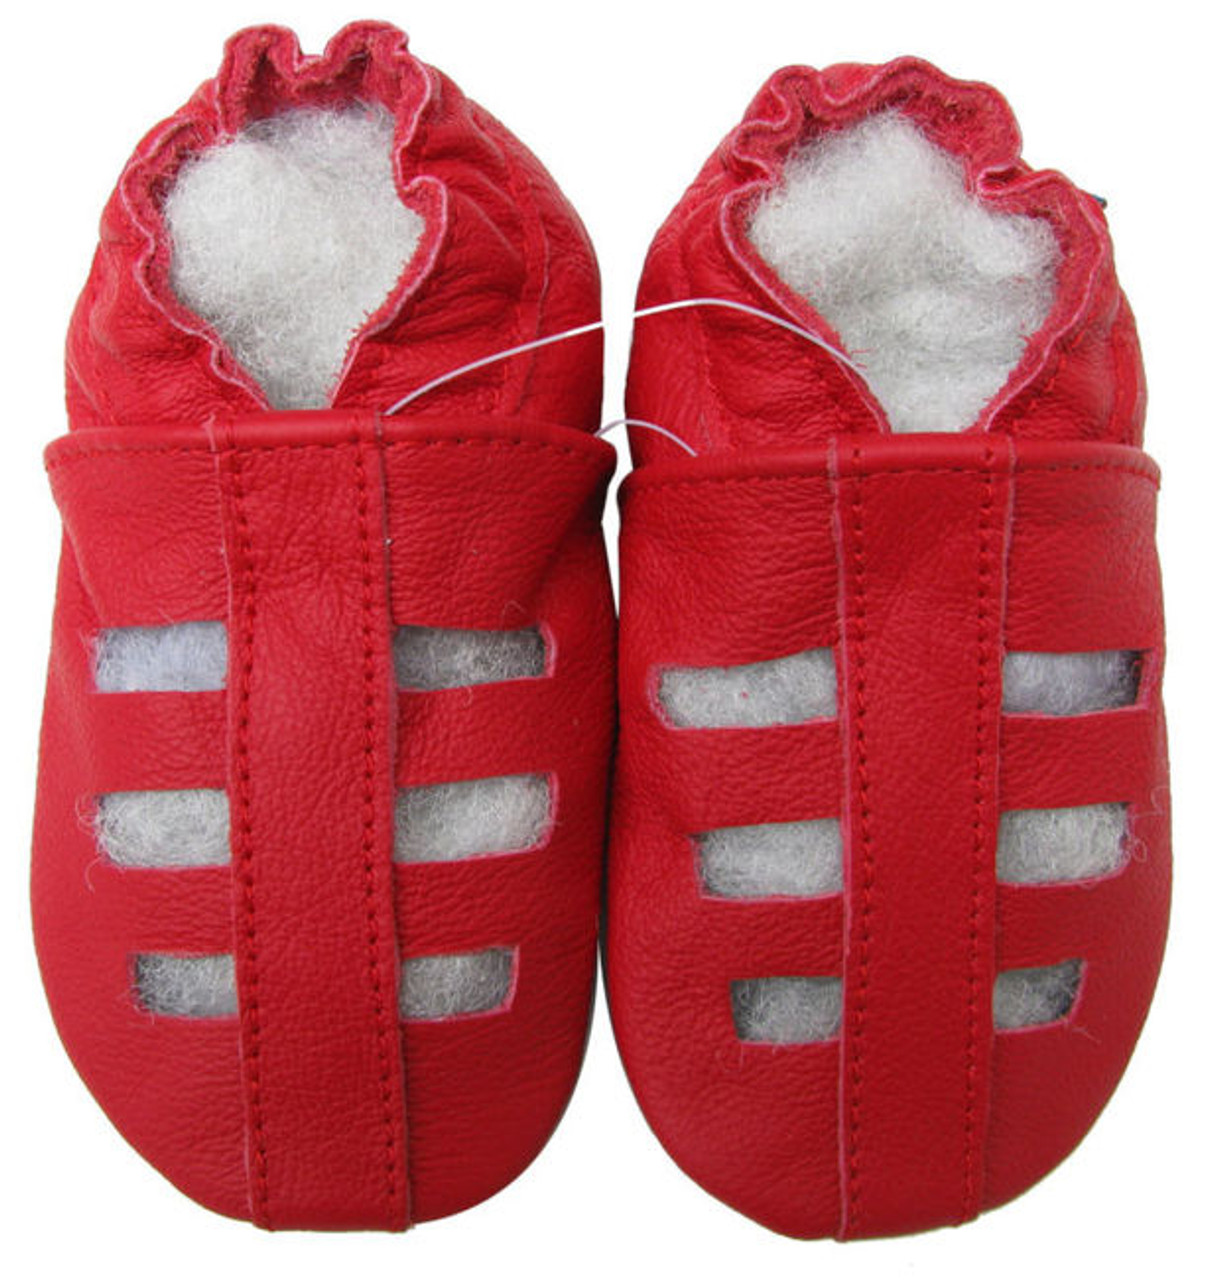 74f6281d30b3f carozoo sandals red 12-18m soft sole leather baby shoes